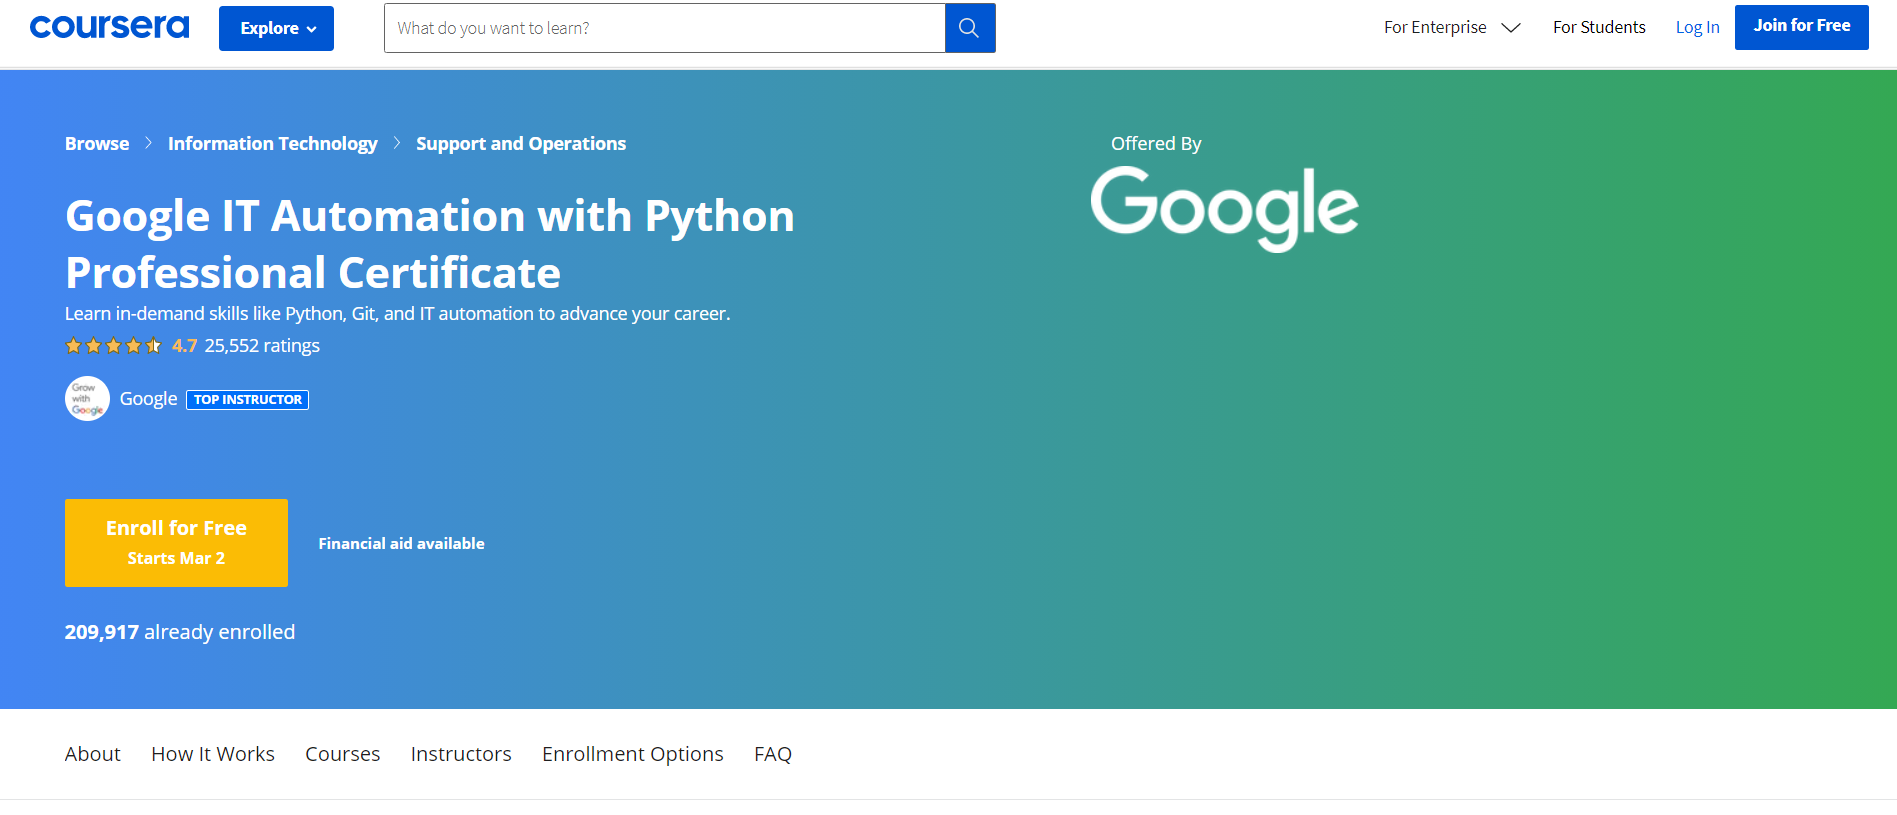 Google IT Automation with Python